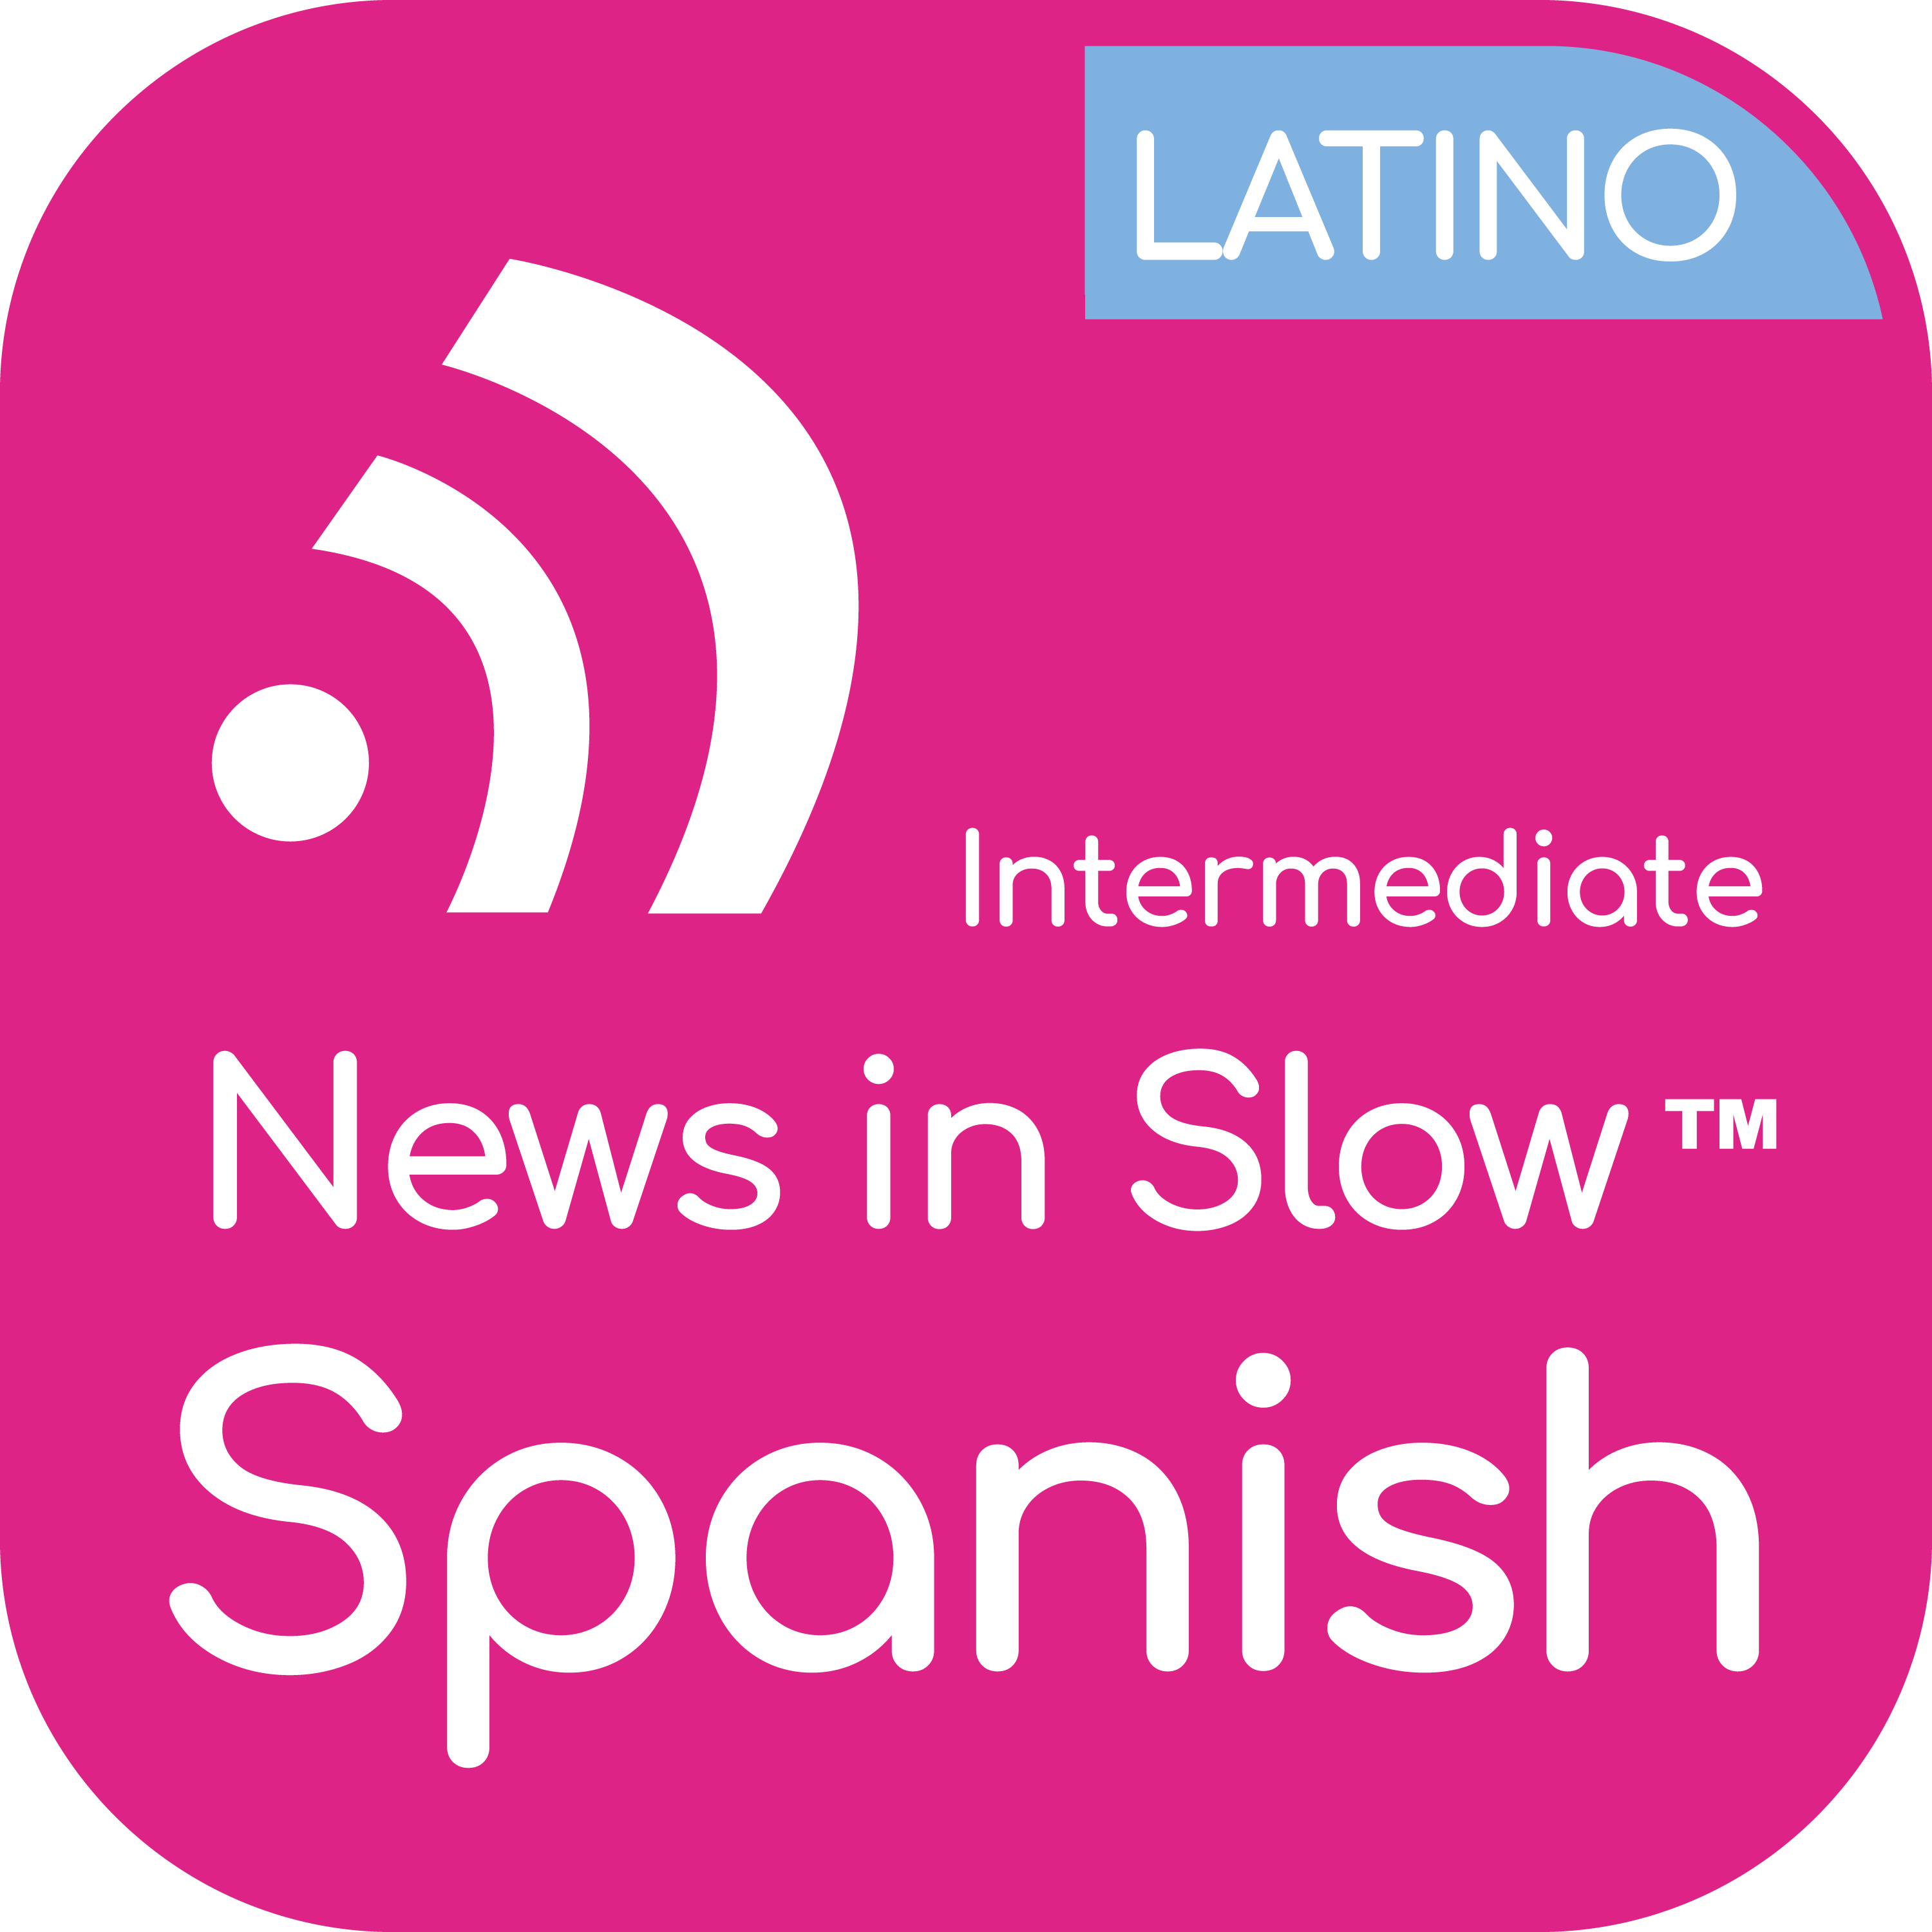 News In Slow Spanish Latino #394 - Spanish Grammar, News, and Expressions